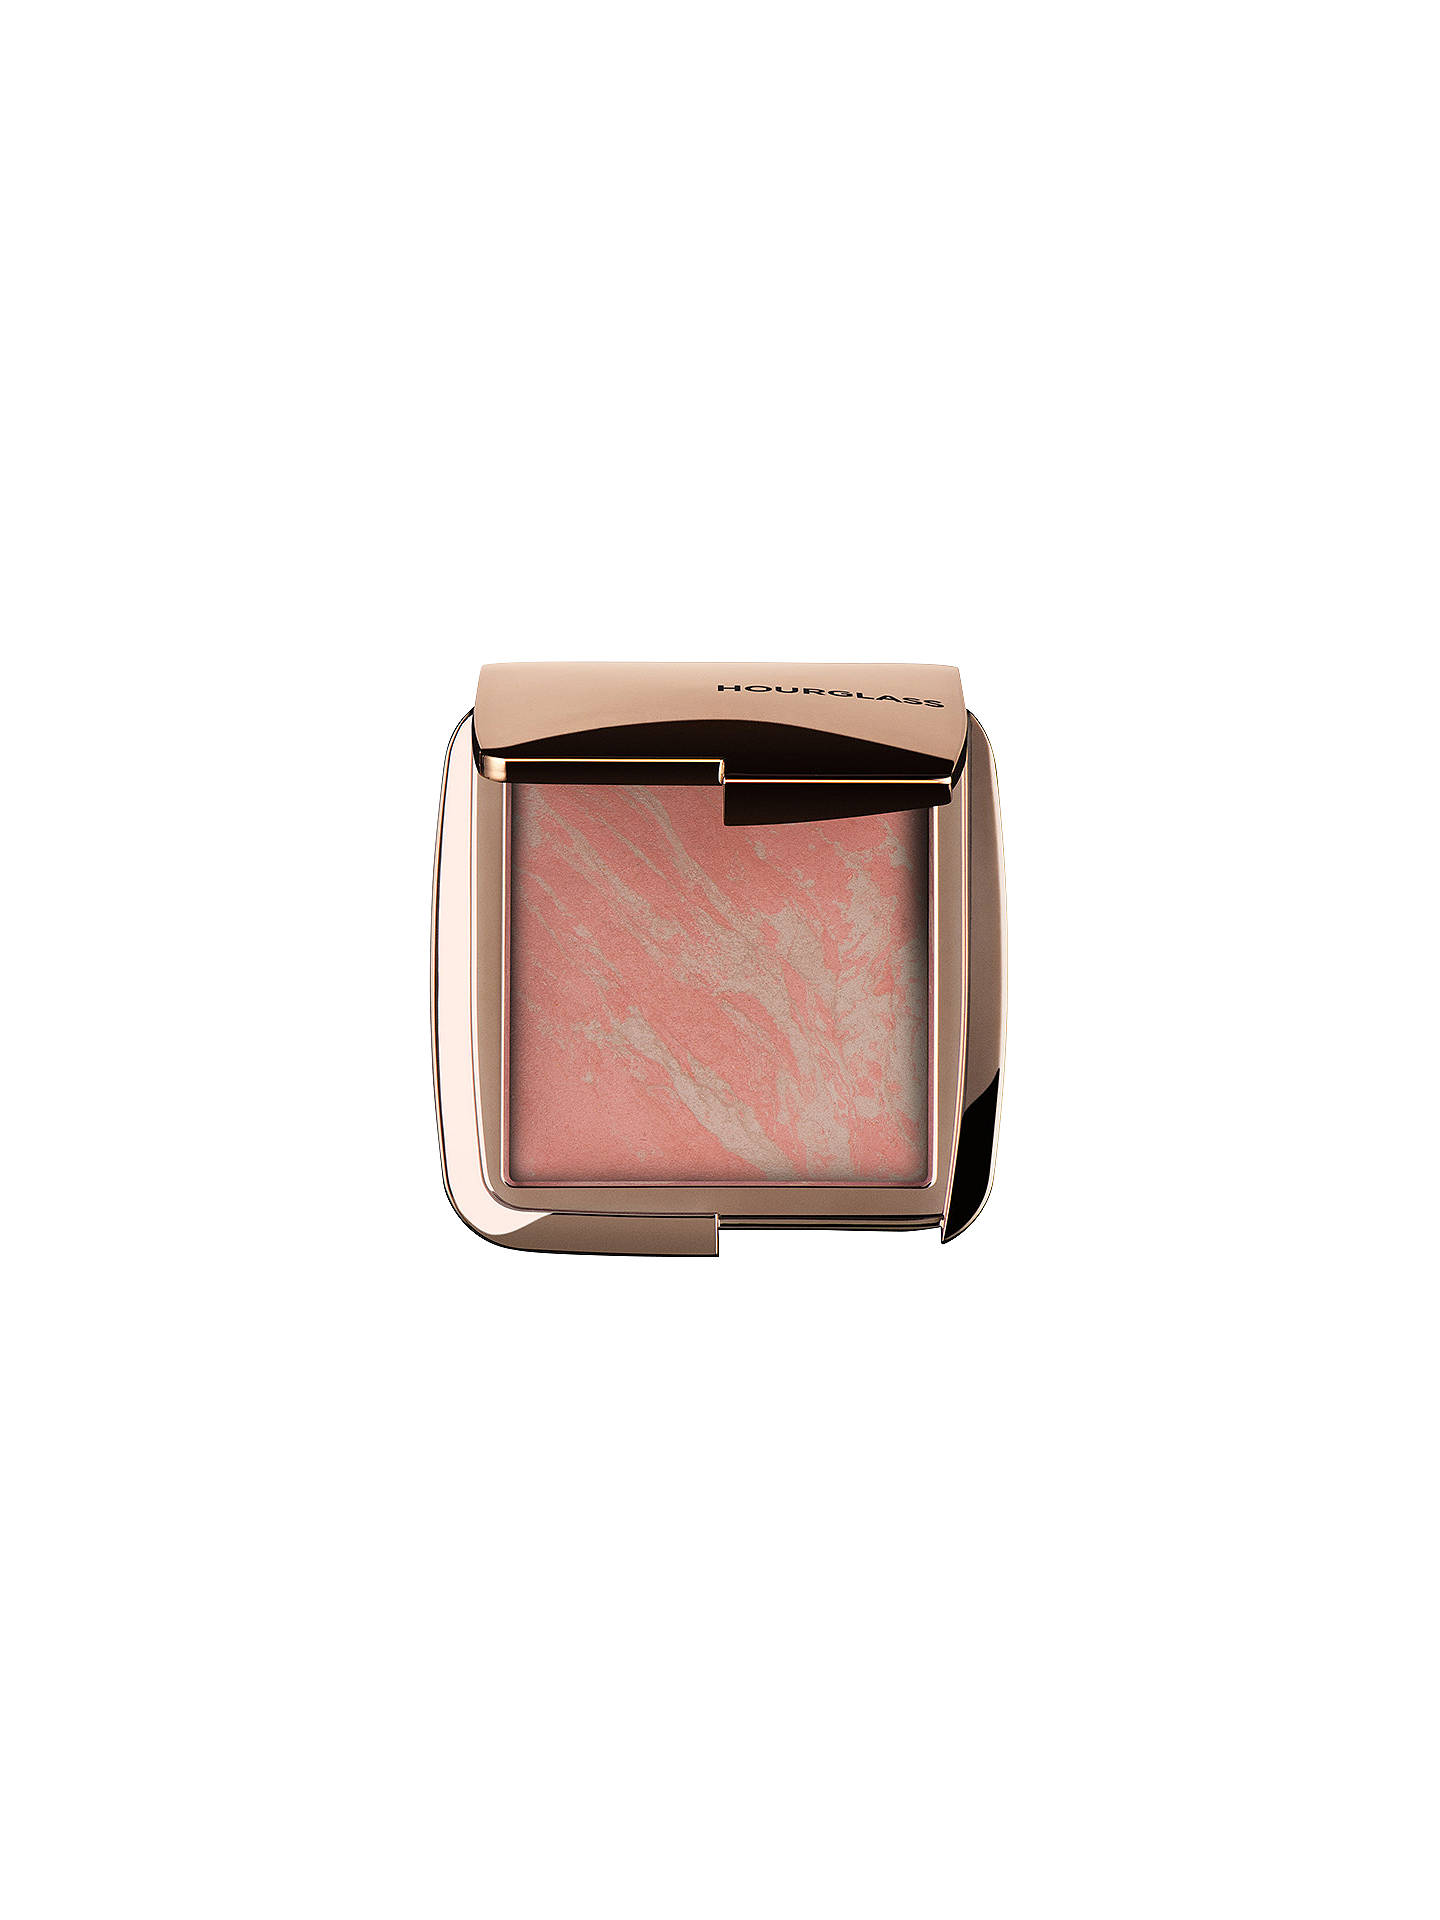 BuyHourglass Ambient Lighting Blush, Dim Infusion Online at johnlewis.com